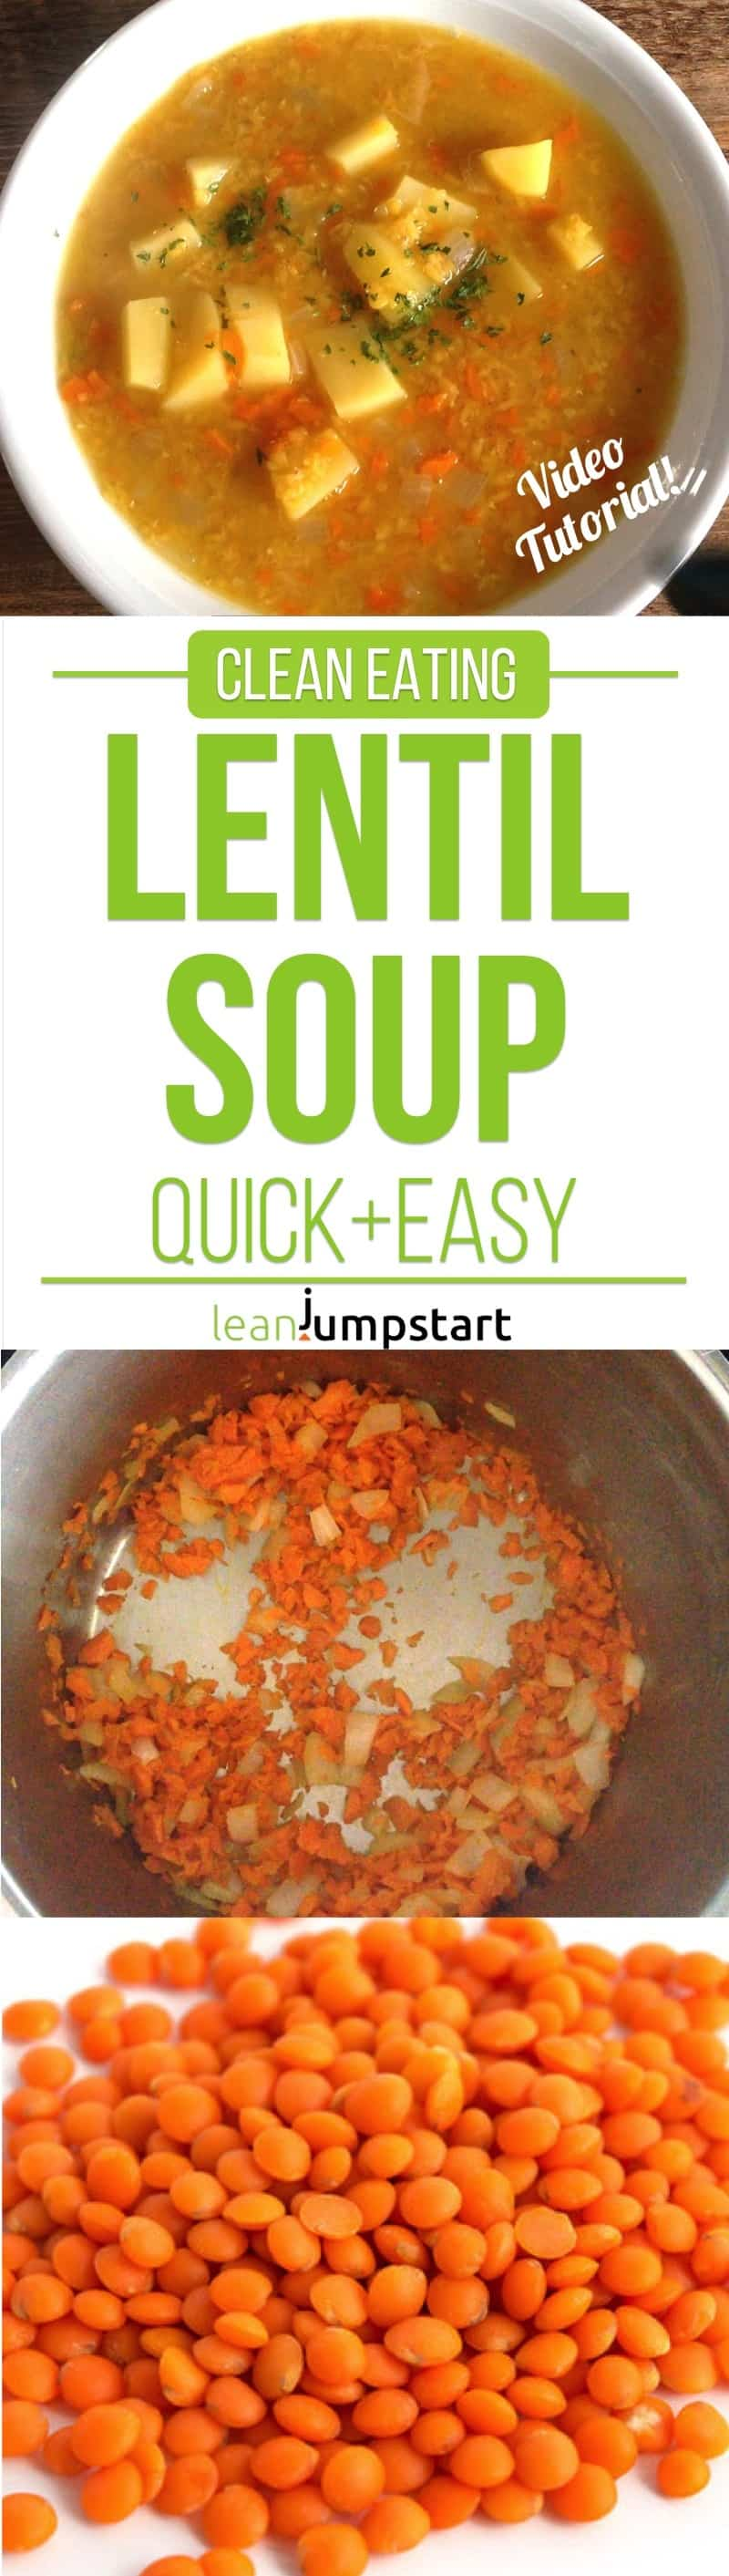 clean eating red lentil soup